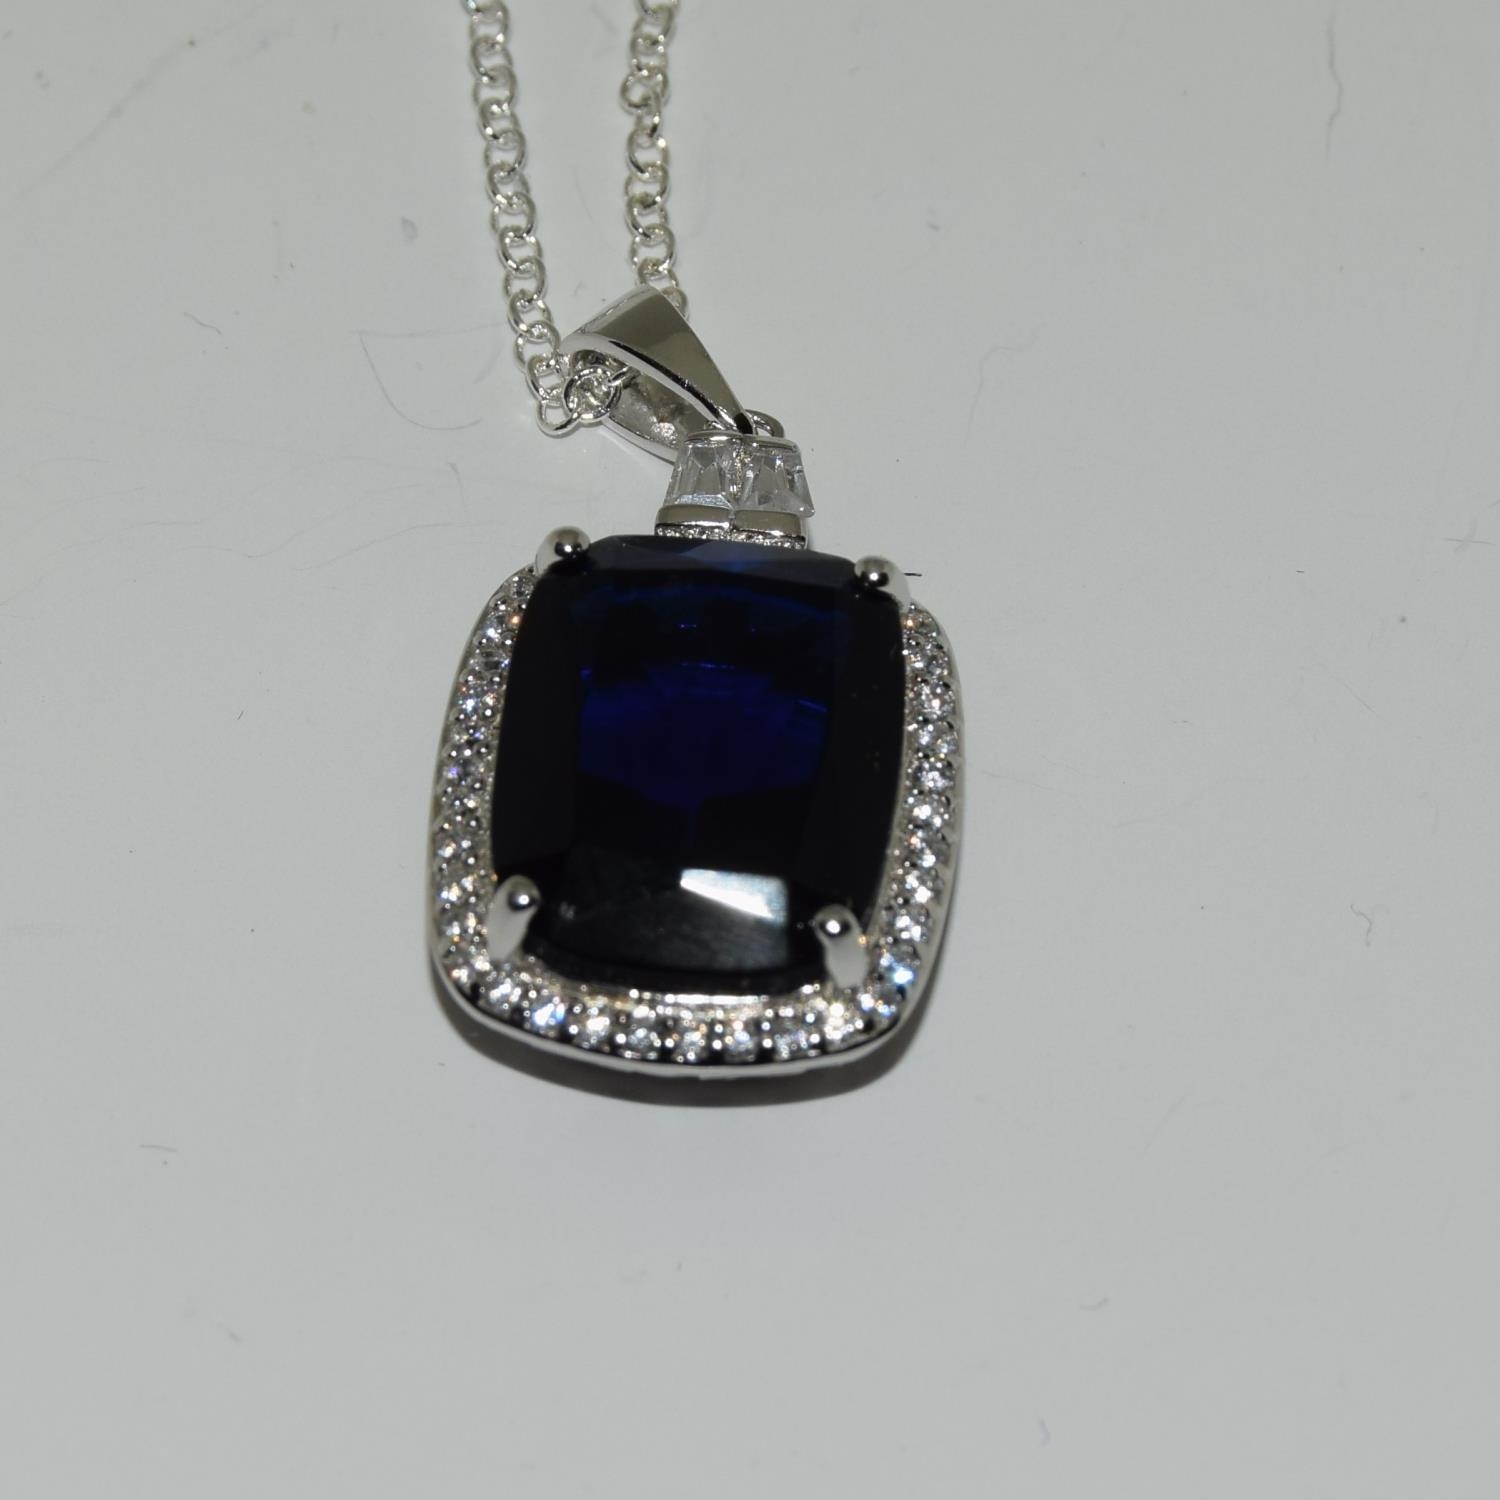 A silver CZ and Faux Sapphire pendant necklace (cased).